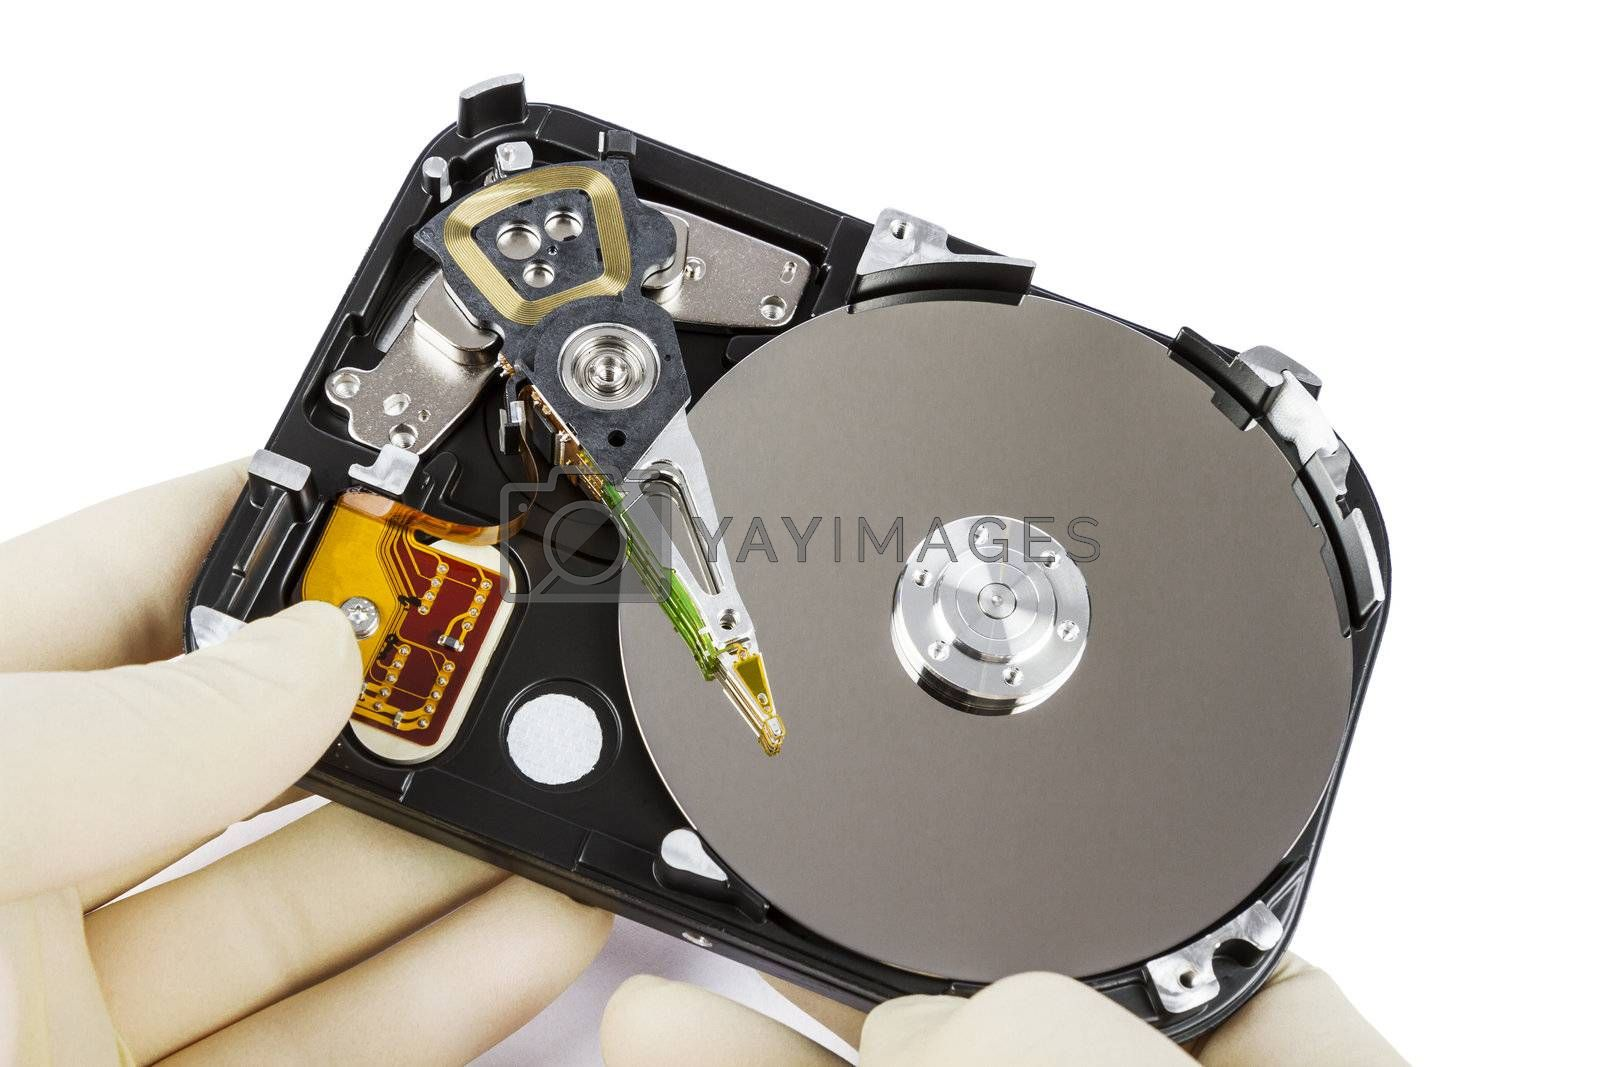 technician with open hard-disk in light background